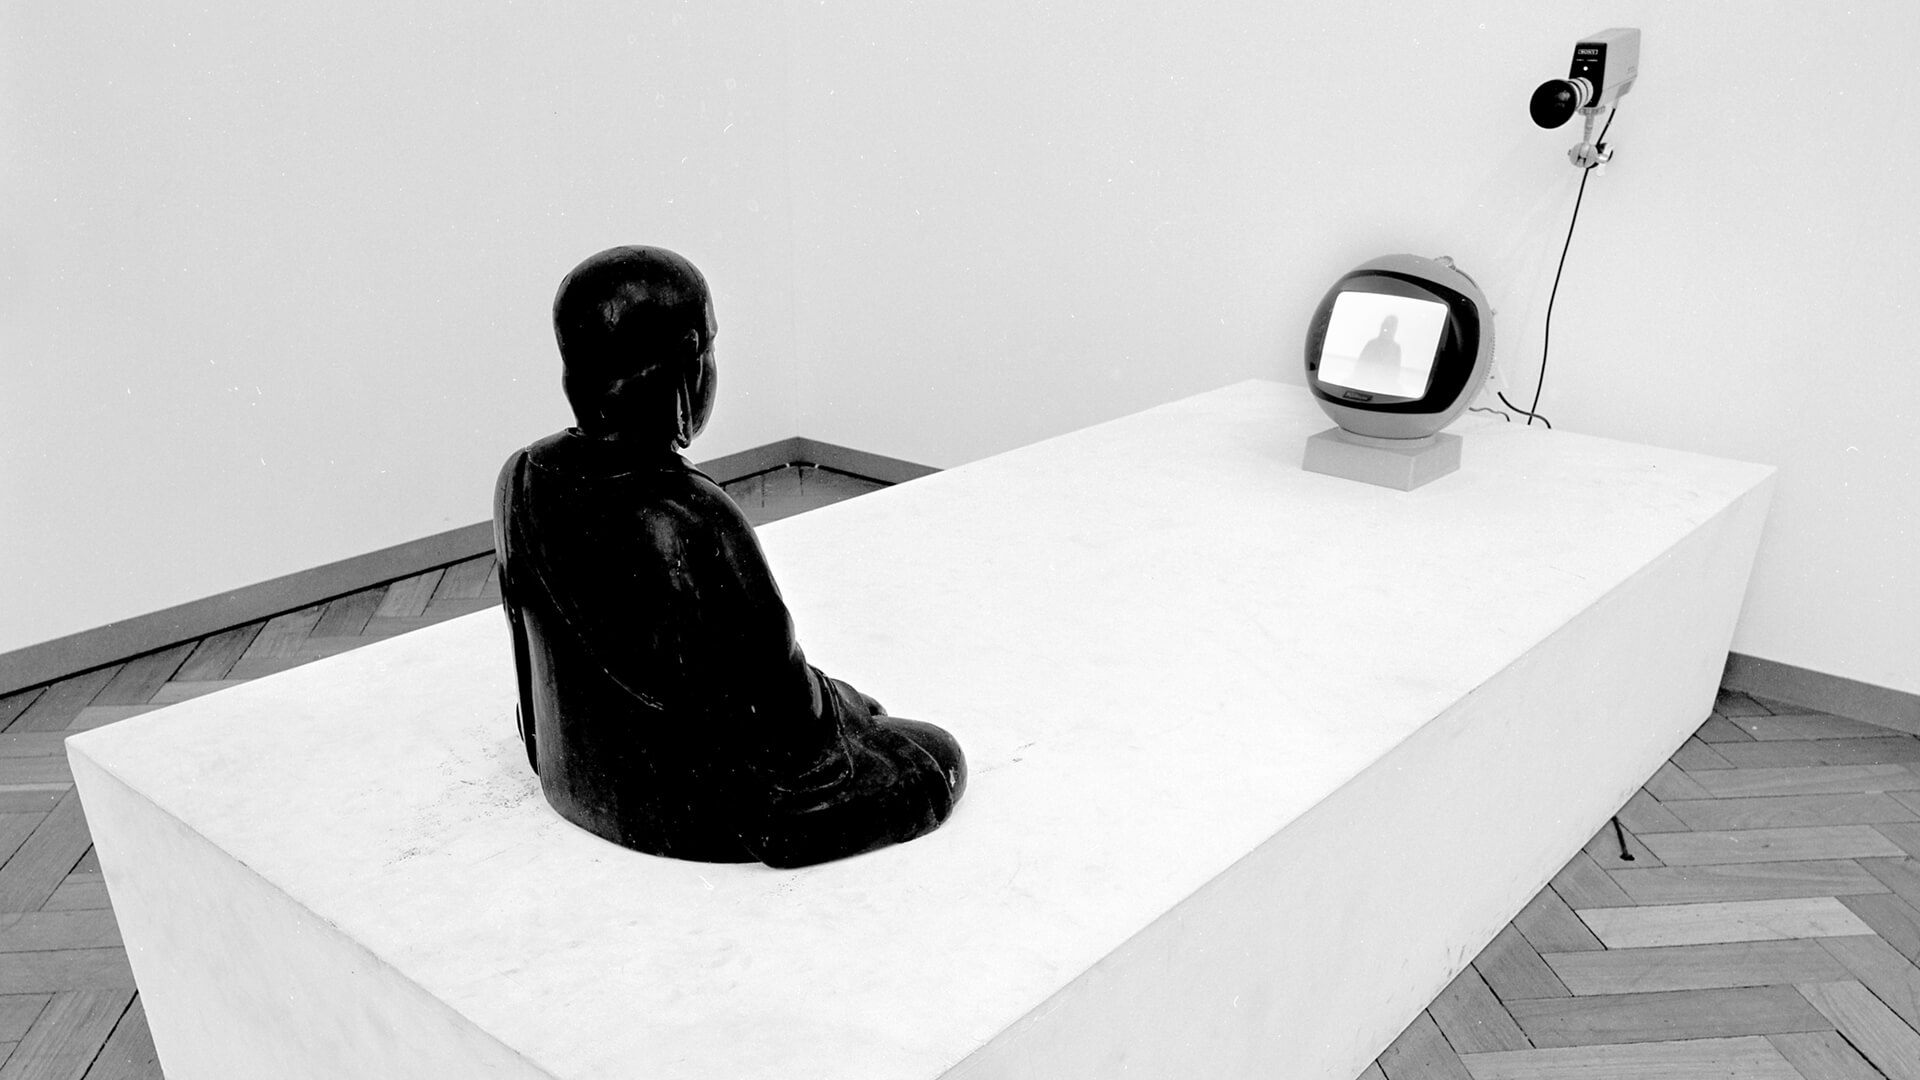 An image of 'TV-Buddha' from Nam June Paik's debut solo exhibition at Stedelijk Museum in 1977 | The Future Is Now by Nam June Paik | STIRworld